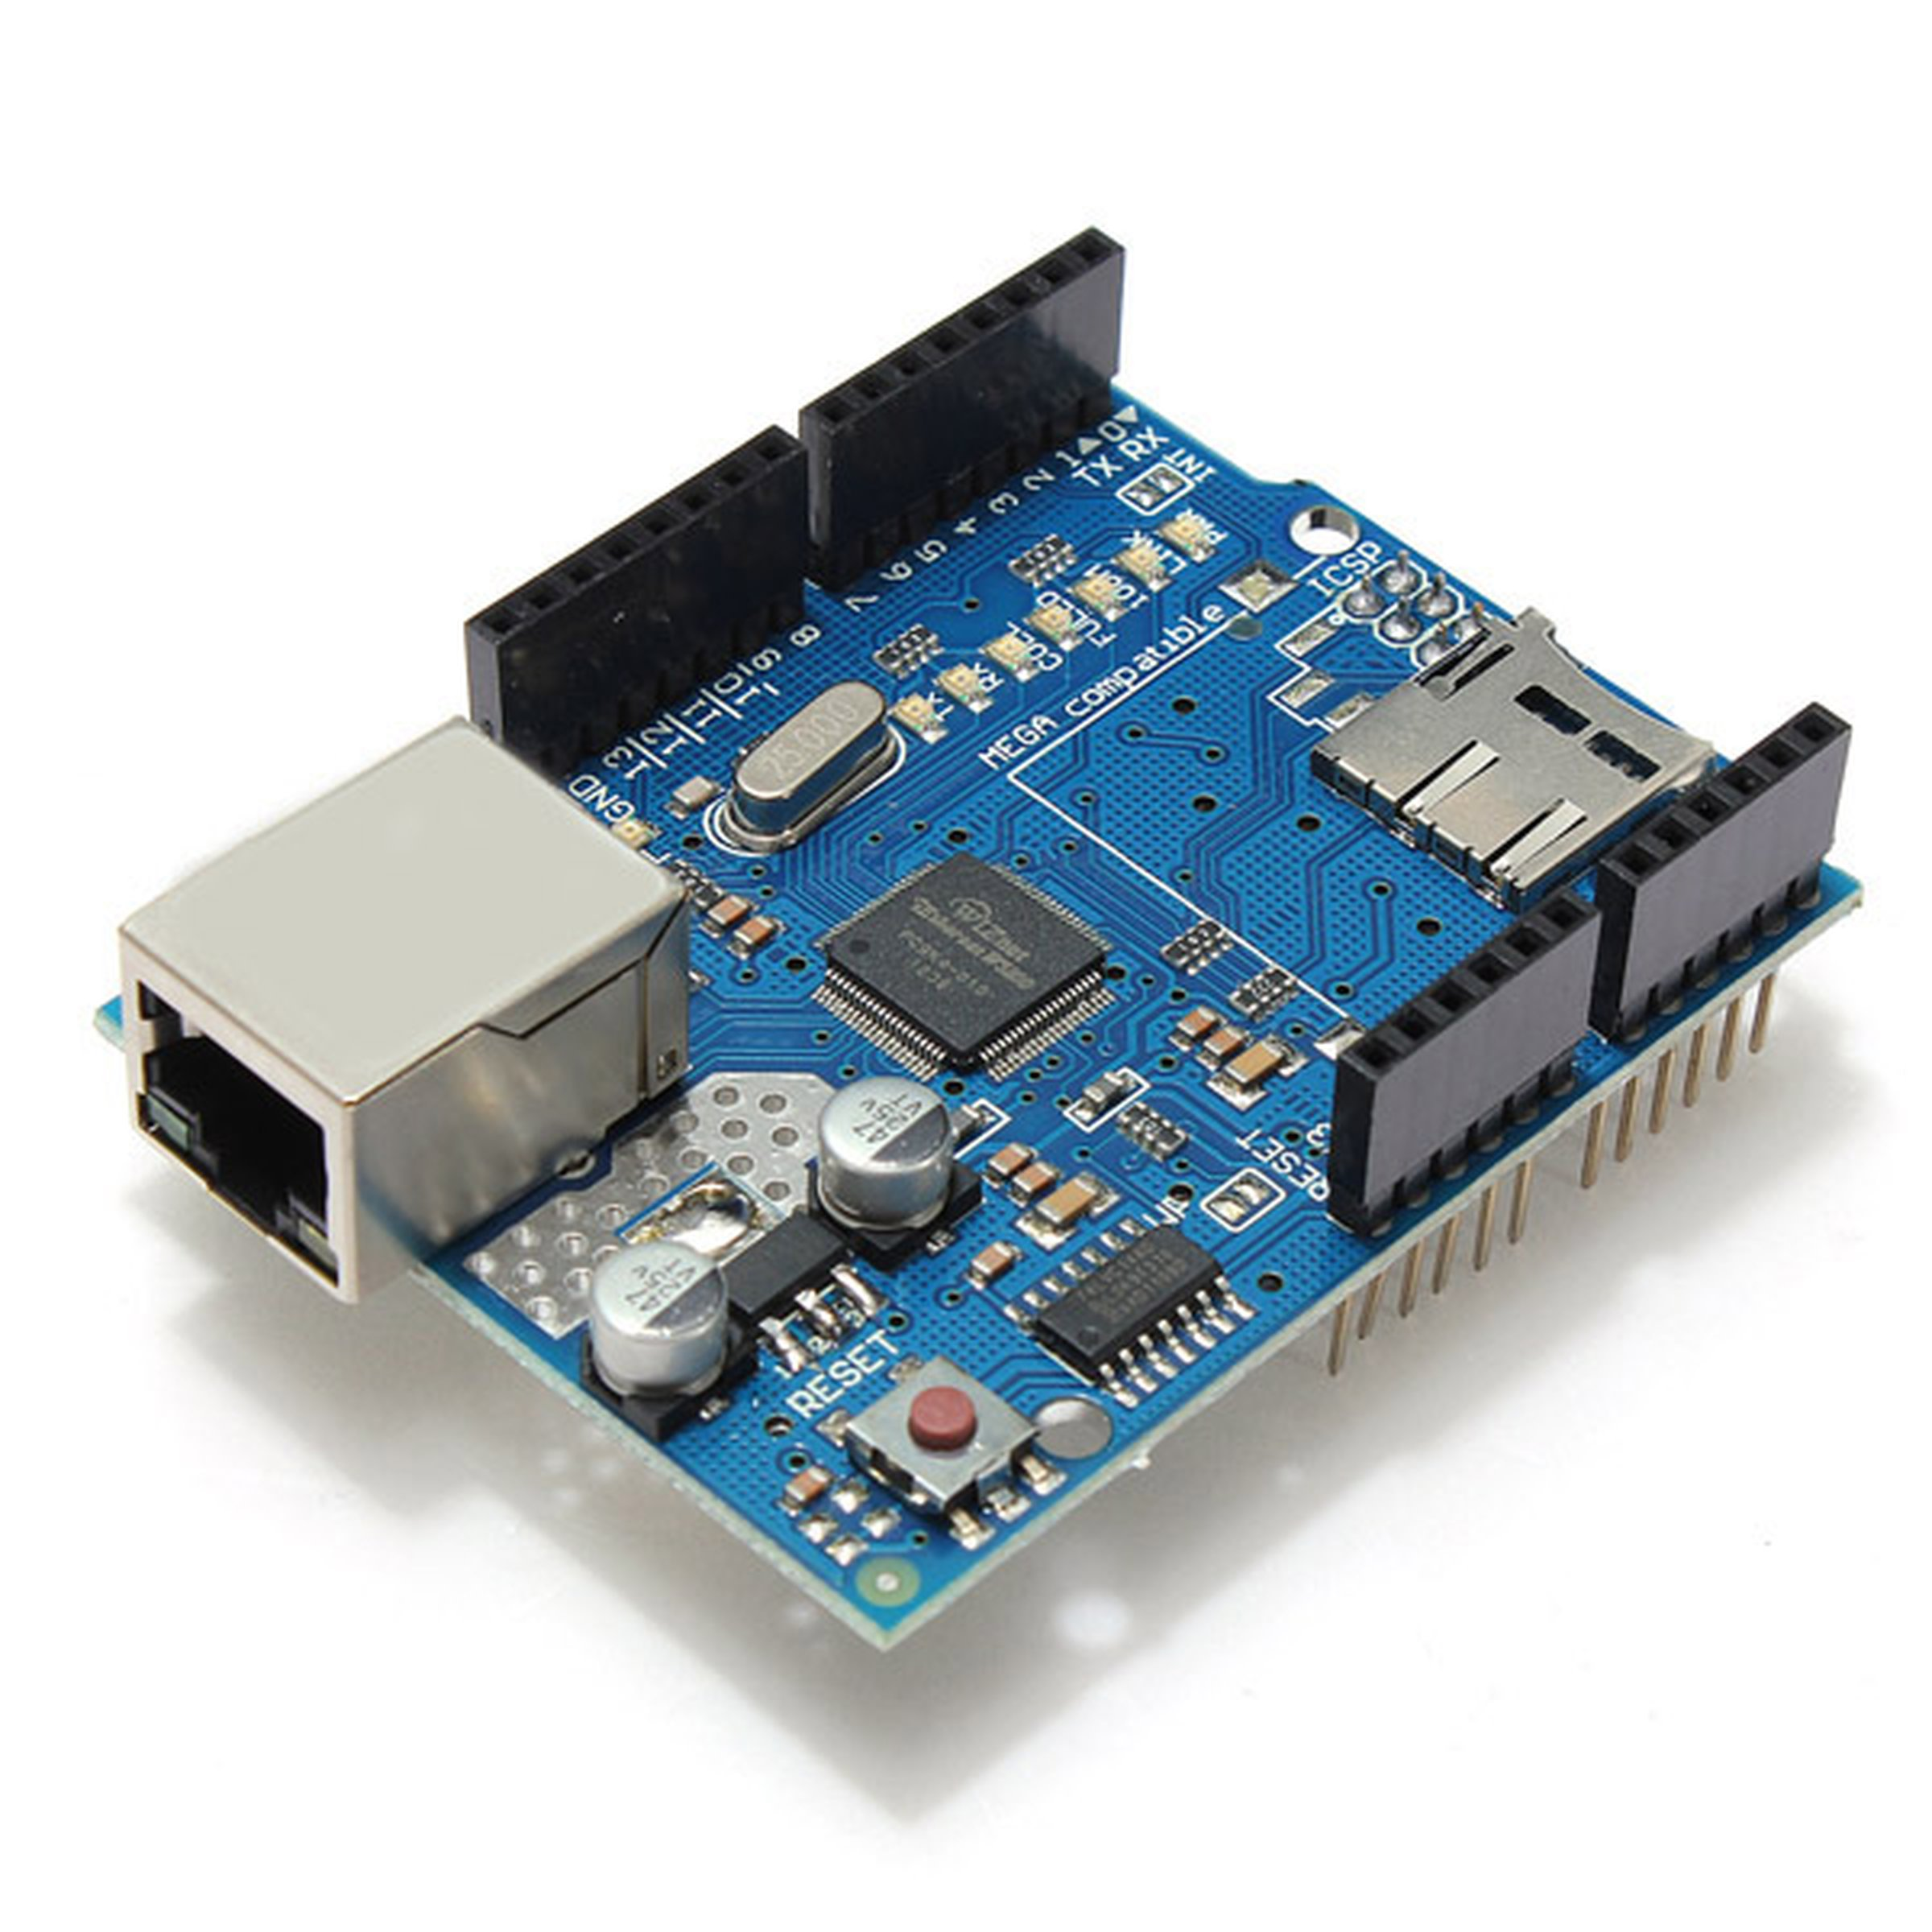 Mcu Electronics Wiki Everything About Wiring Diagram Slinky 6v Sealed Lead Acid Battery Charger Uc3906 Based Arduino Ethernet Shield Sd Card Code Dedicard Co 4 Arinc 600